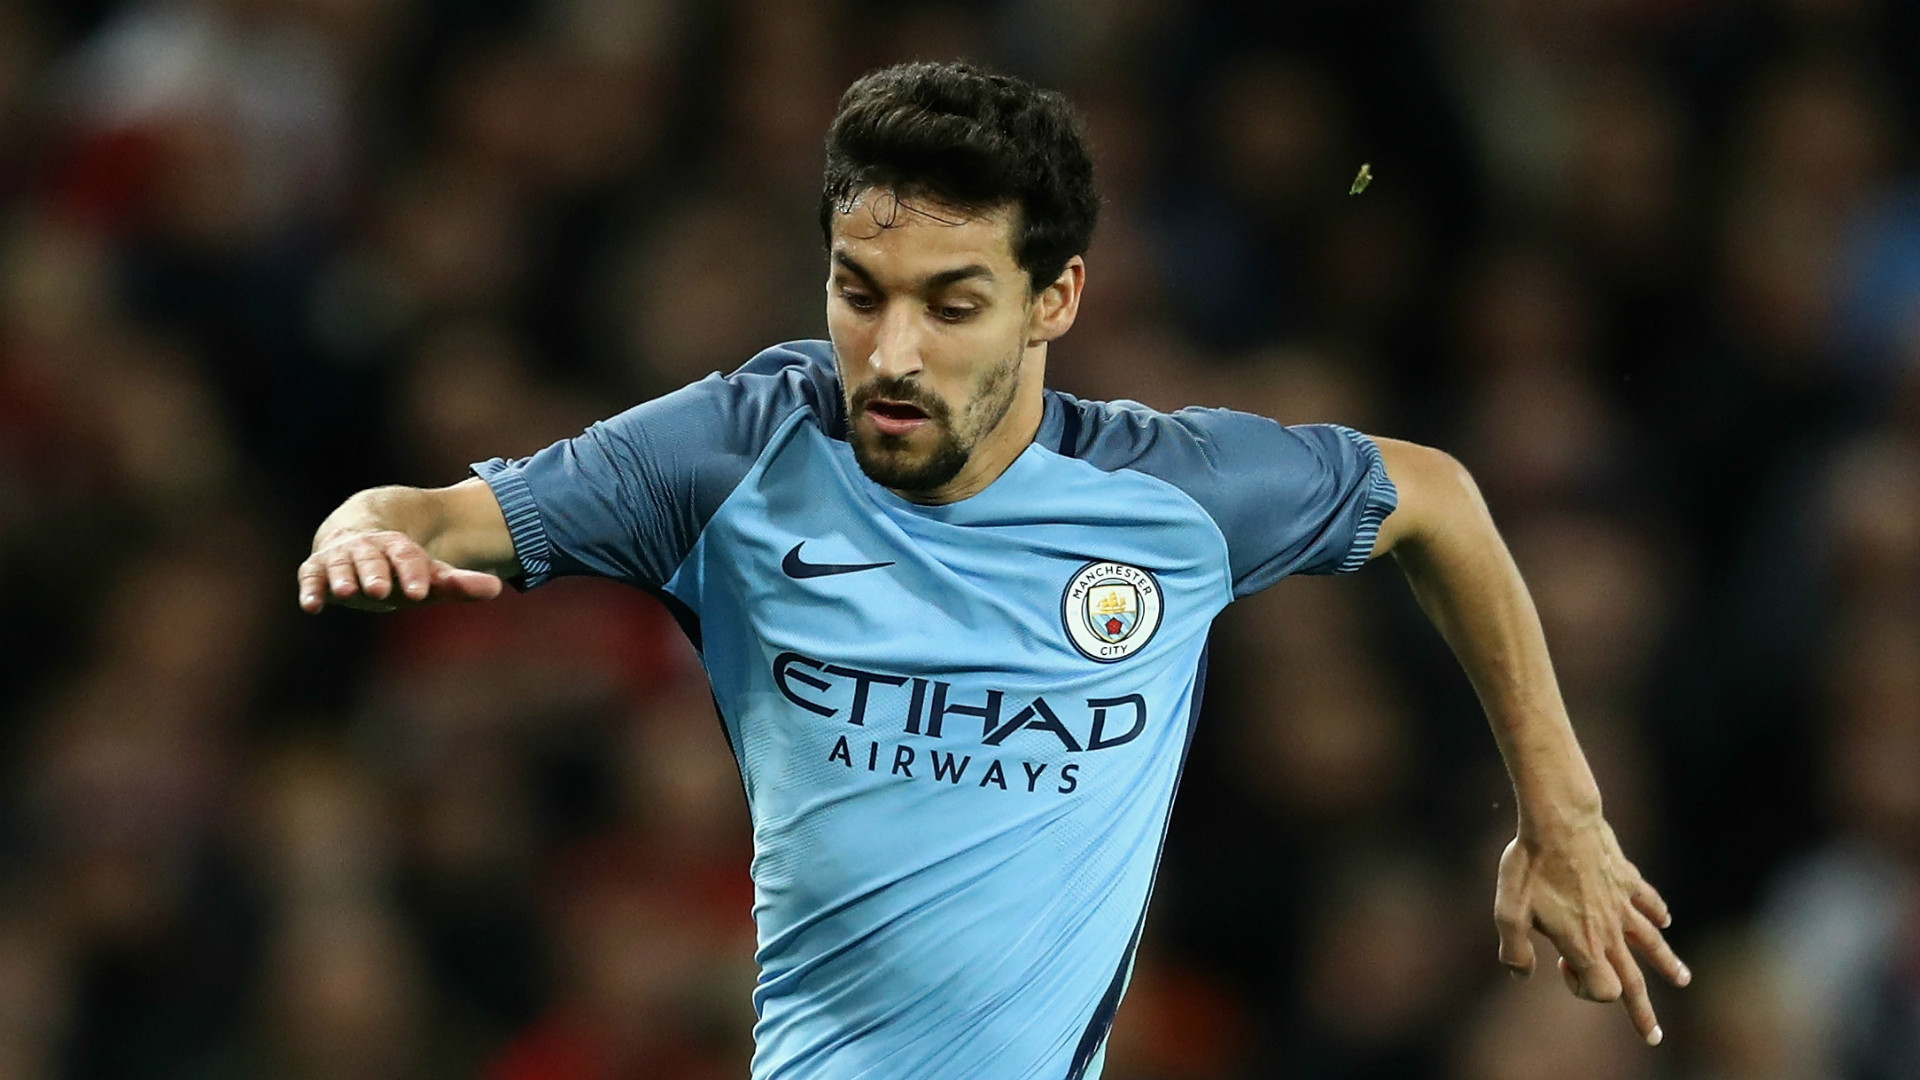 https://images.performgroup.com/di/library/GOAL_INTERNATIONAL/65/dd/hd-jesus-navas-manchester-city_1nfguhpd7bg7l12zar9v42wxtl.jpg